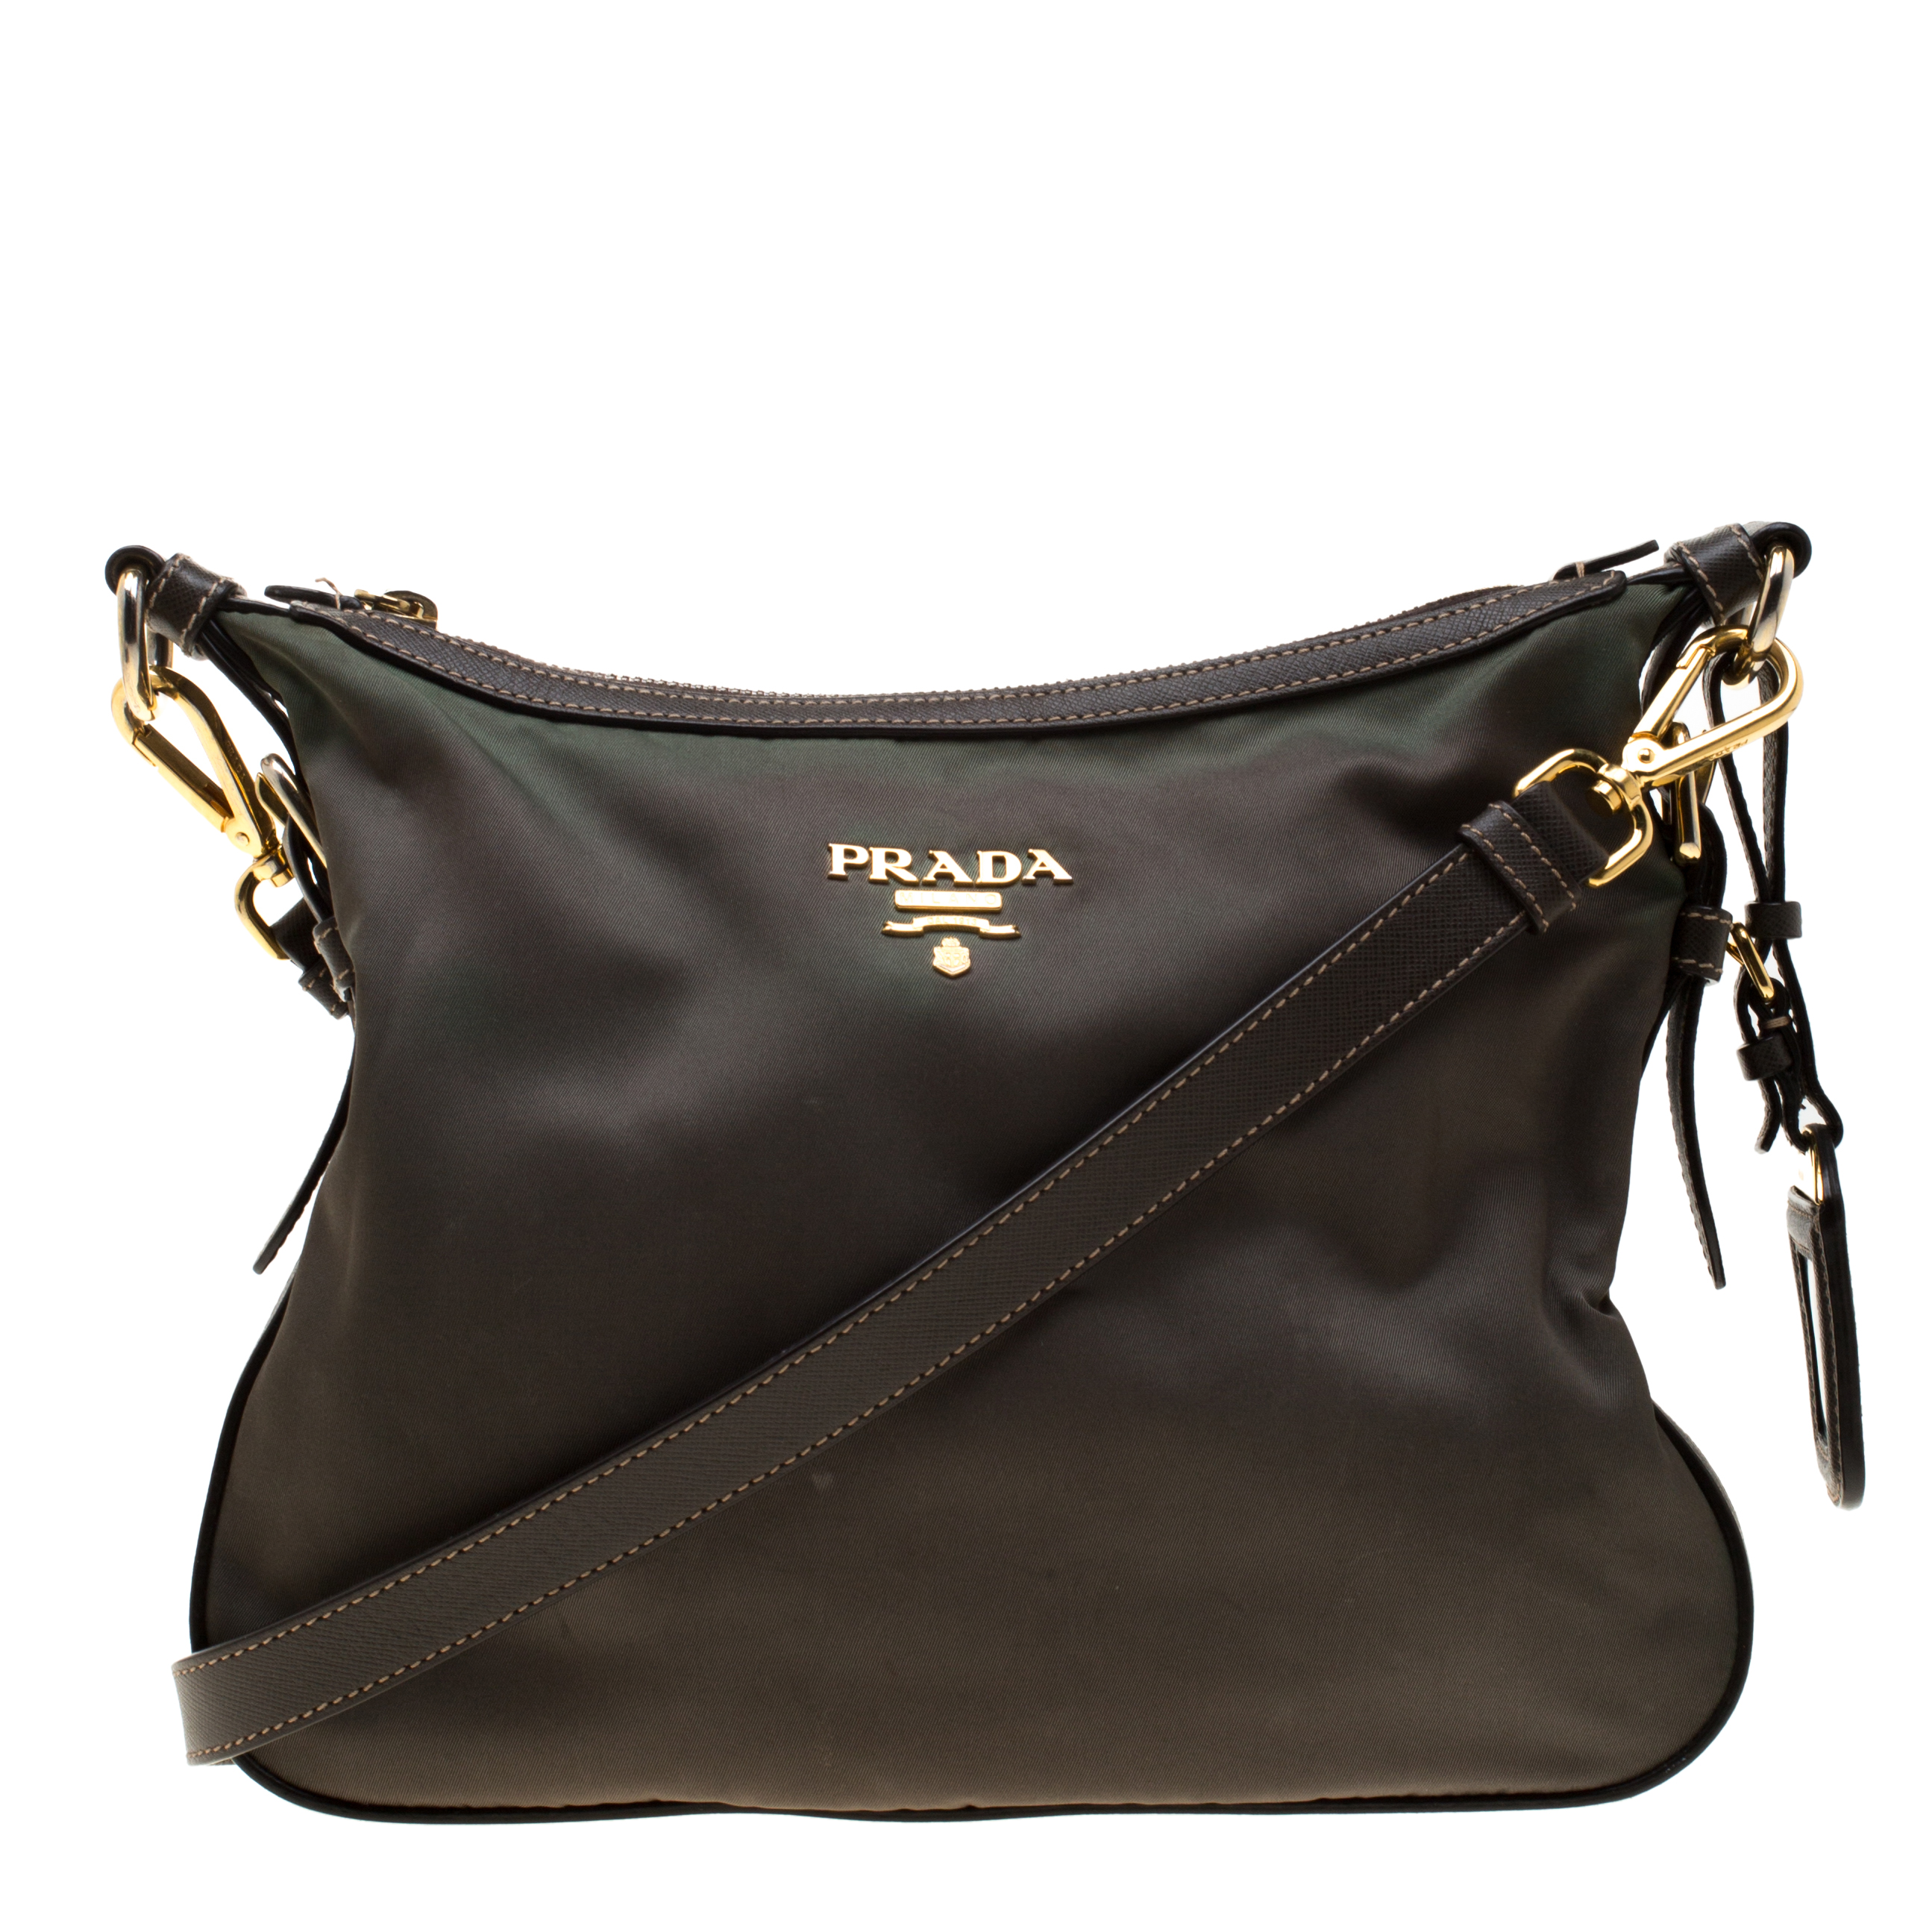 ab8248f33f79 Buy Prada Green/Brown Nylon and Leather Shoulder Bag 187057 at best ...